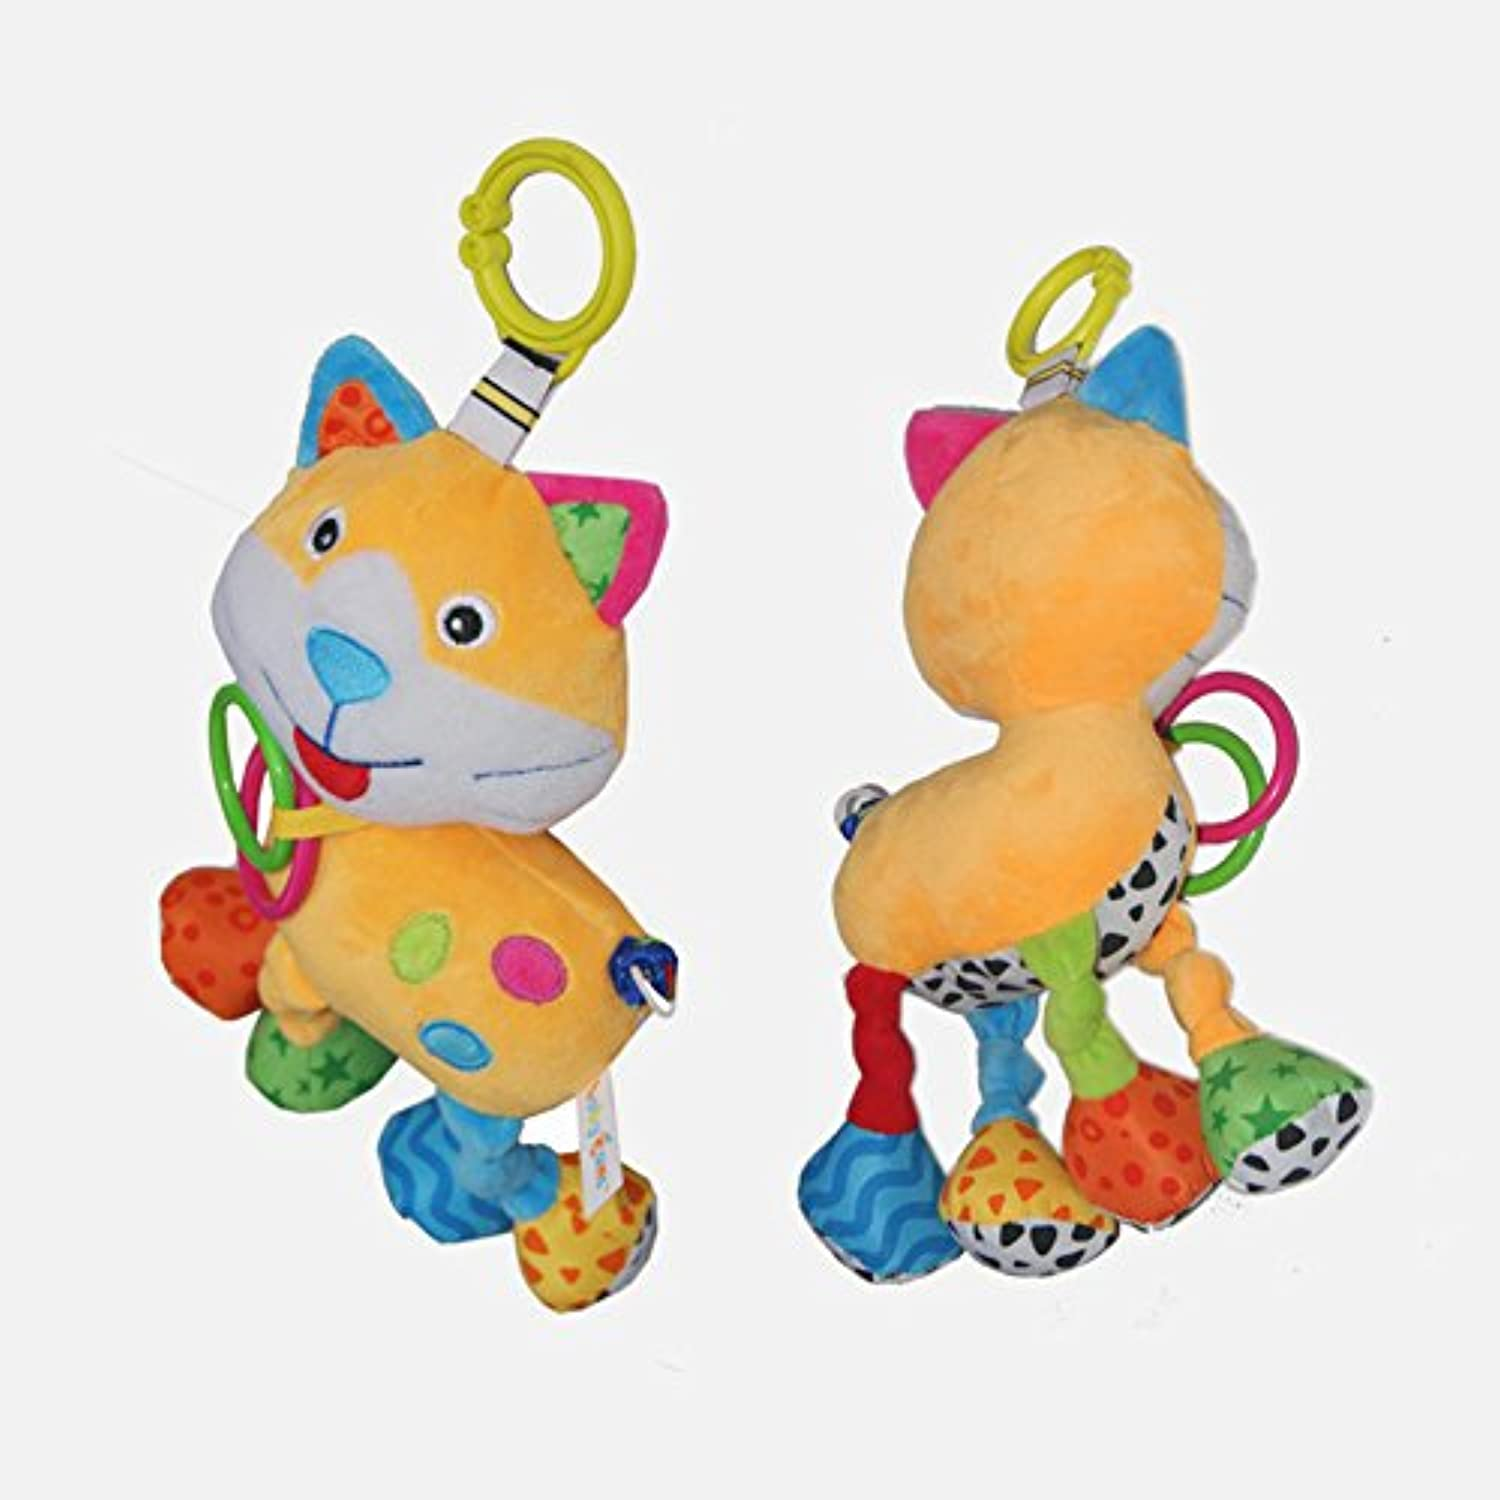 JTENGYAOソフトPlush Animal Baby Rattle Toy with音楽、Can Take in baby hand